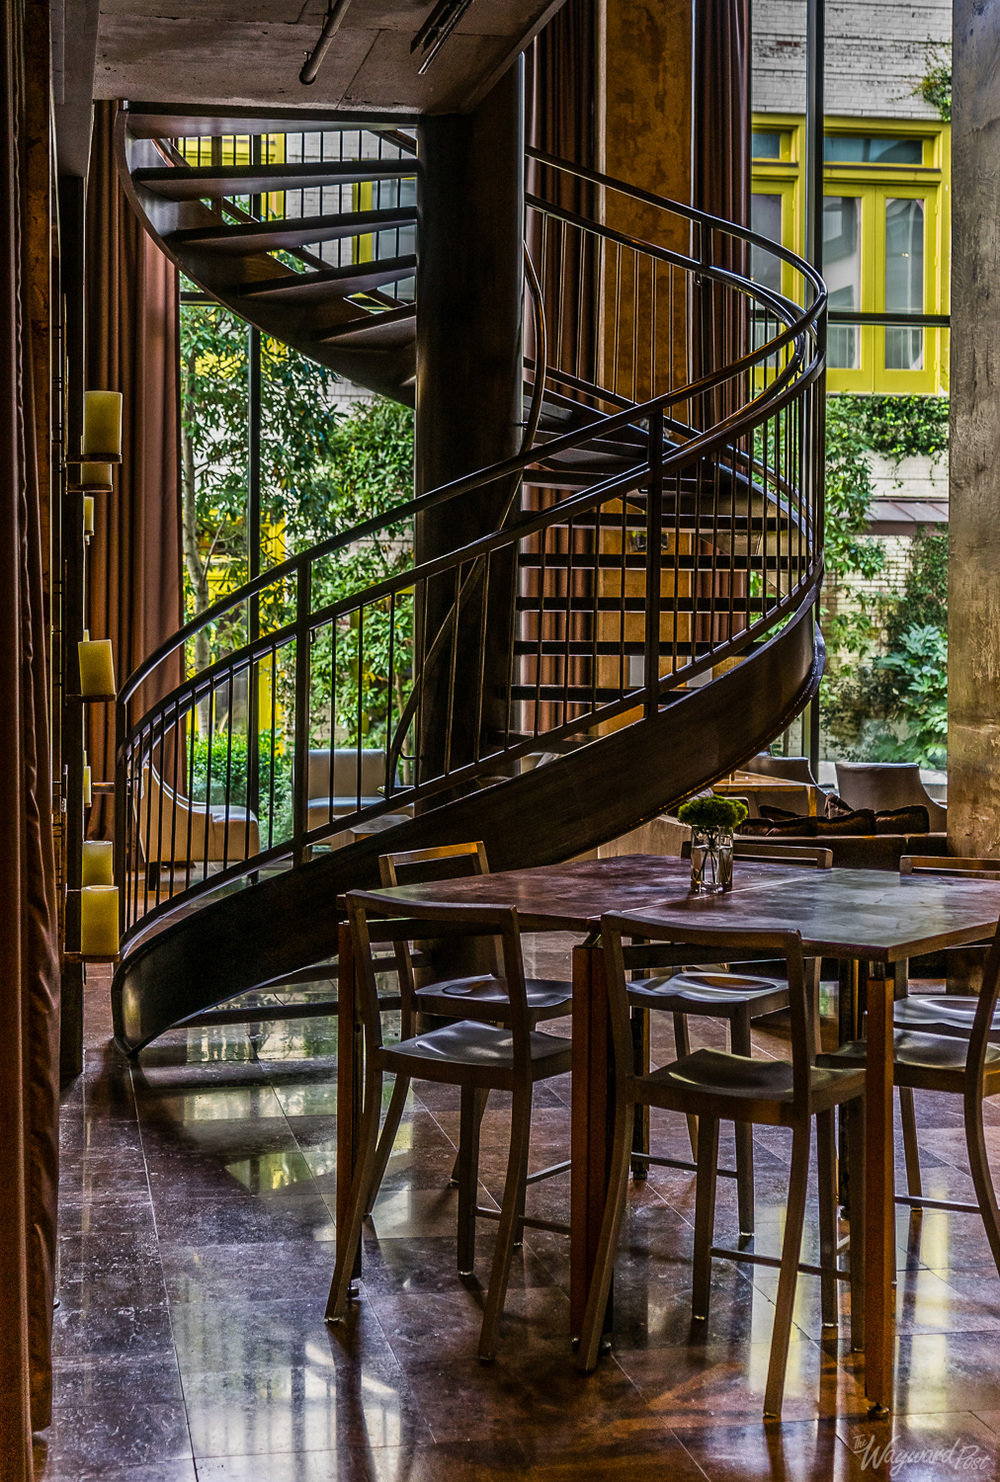 Spiral staircase to the lounge area and bluebell garden at the Proximity Hotel Greensboro North Carolina. Photo by Zygmunt Spray.